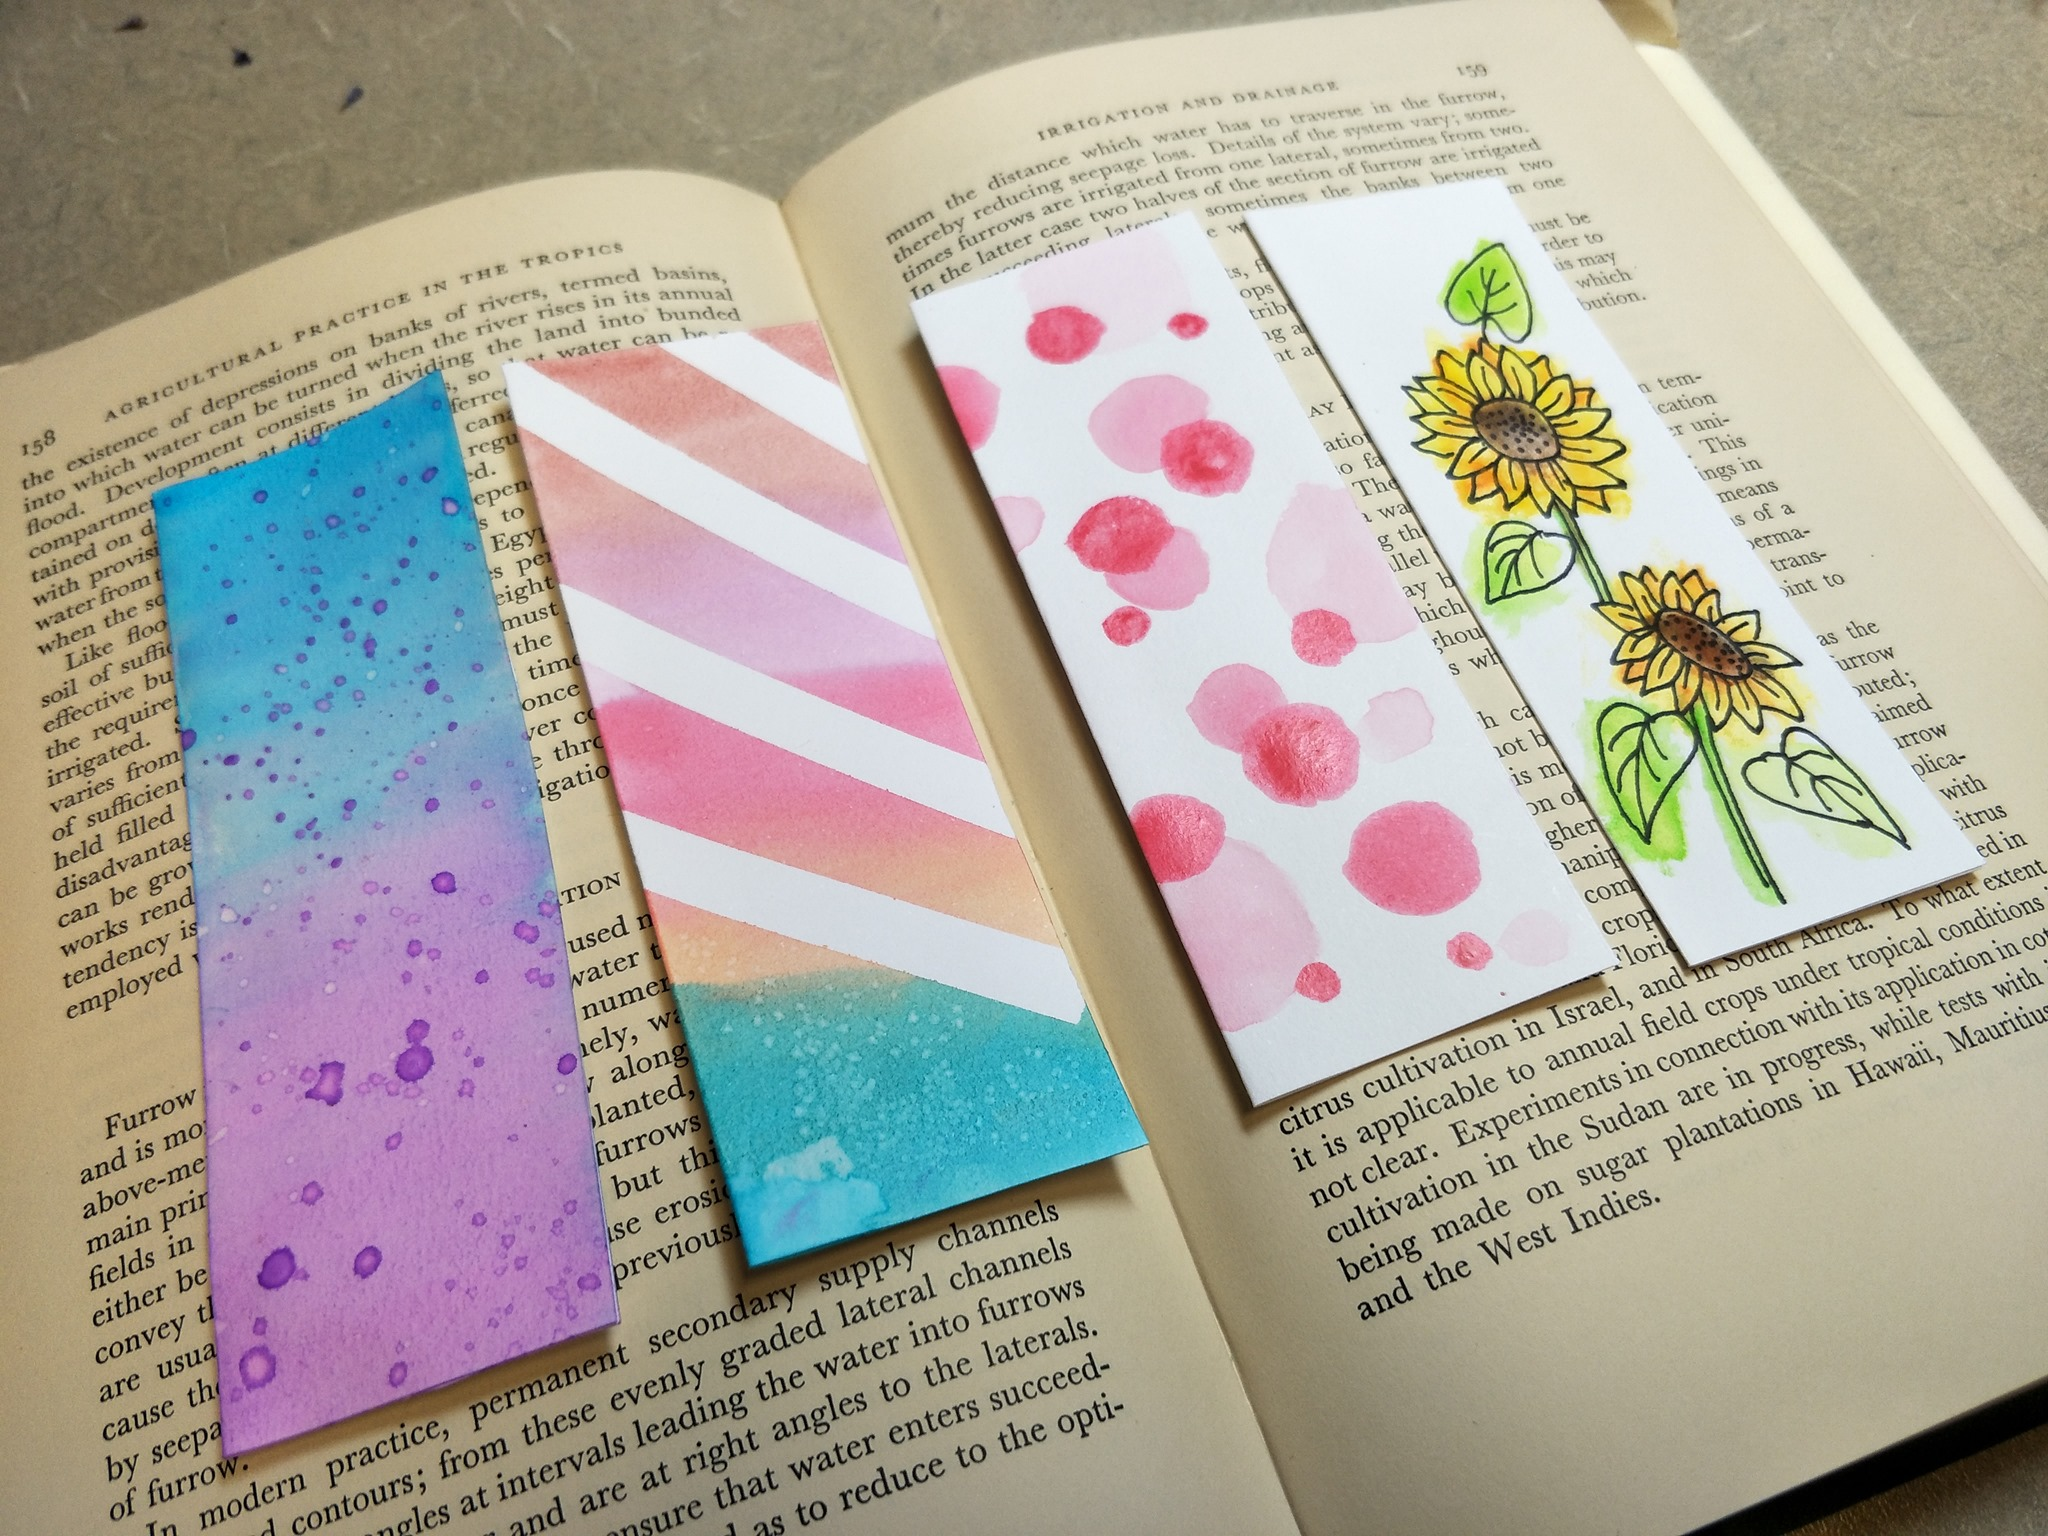 An open book with 4 paper book marks on it. One is purple and blue, one has white stripes, one has red and pink dots, and the other has yellow sunflowers